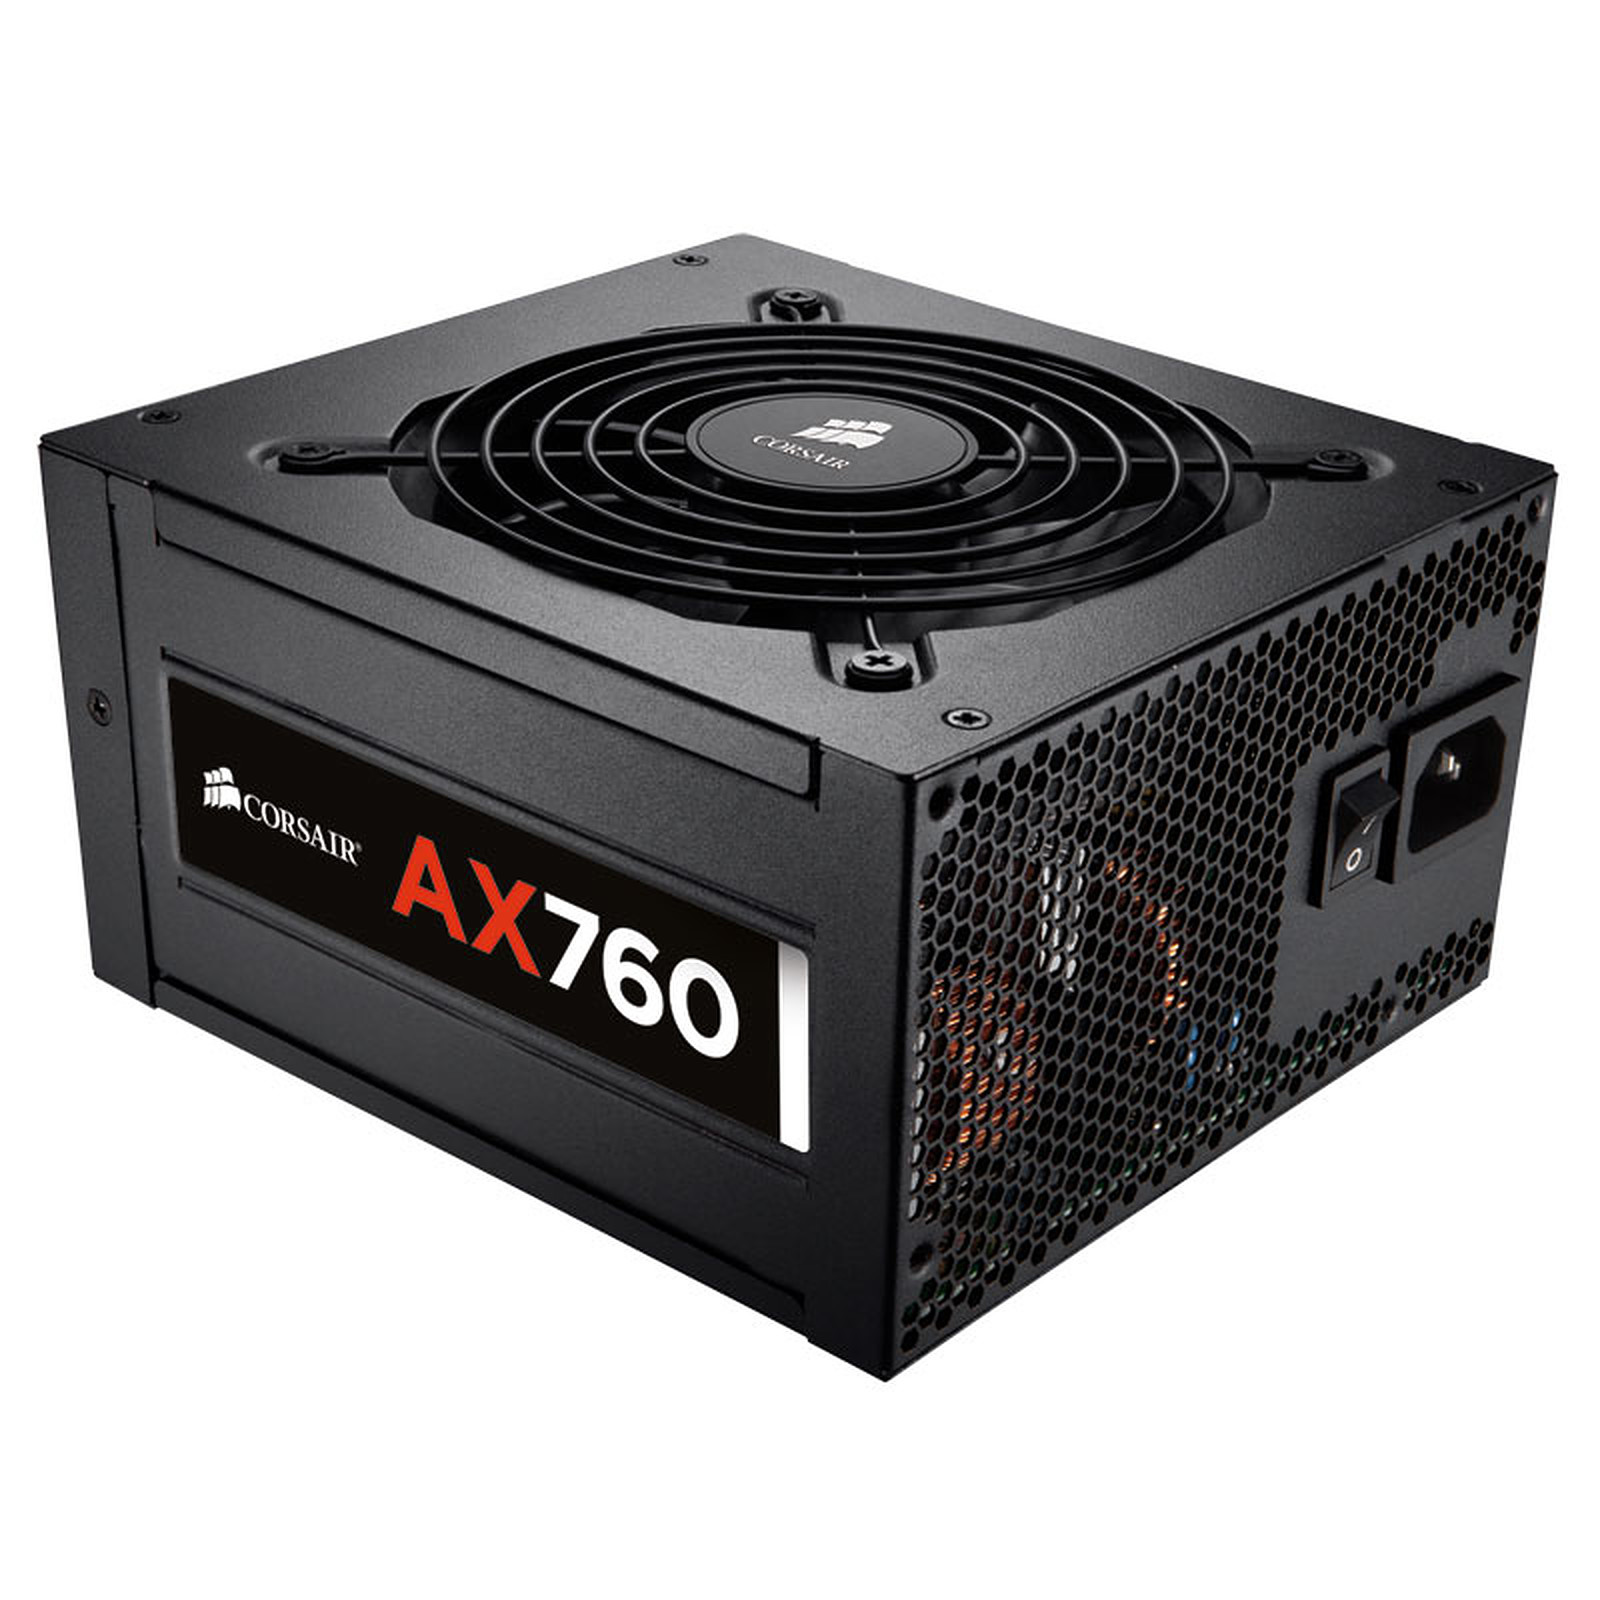 Corsair AX760 80PLUS Platinum